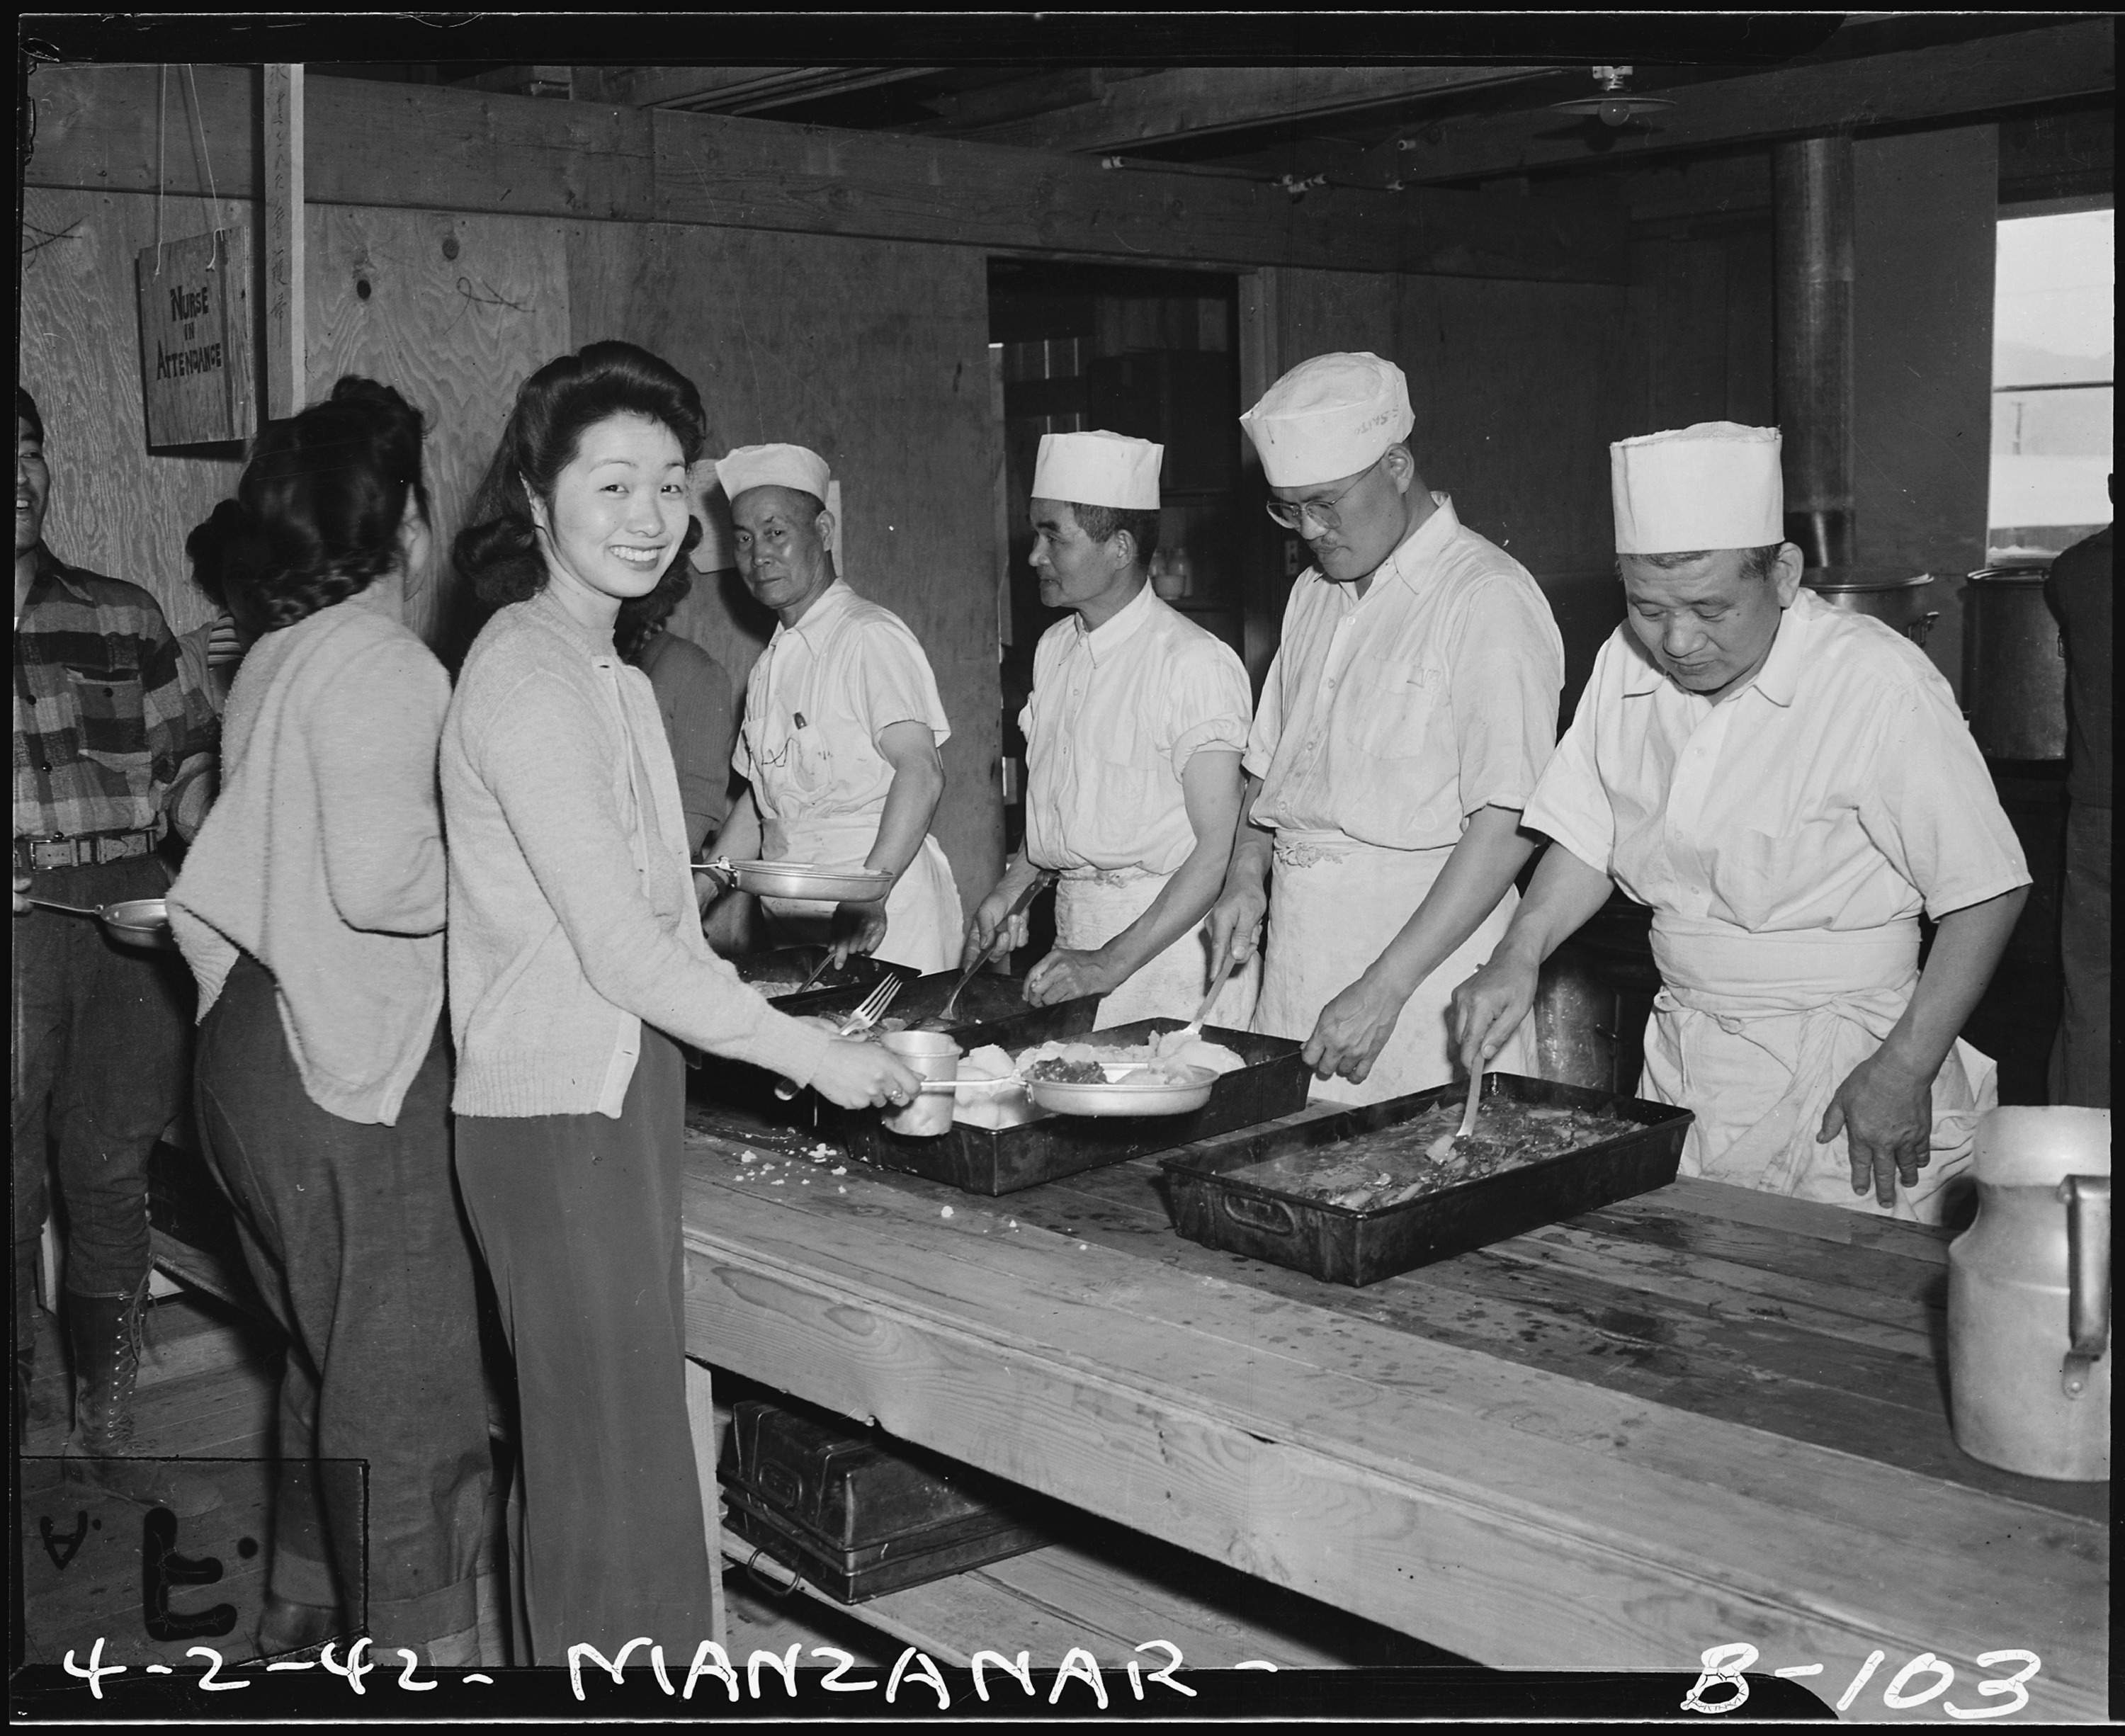 file manzanar relocation center manzanar california mealtime  file manzanar relocation center manzanar california mealtime cafeteria style at